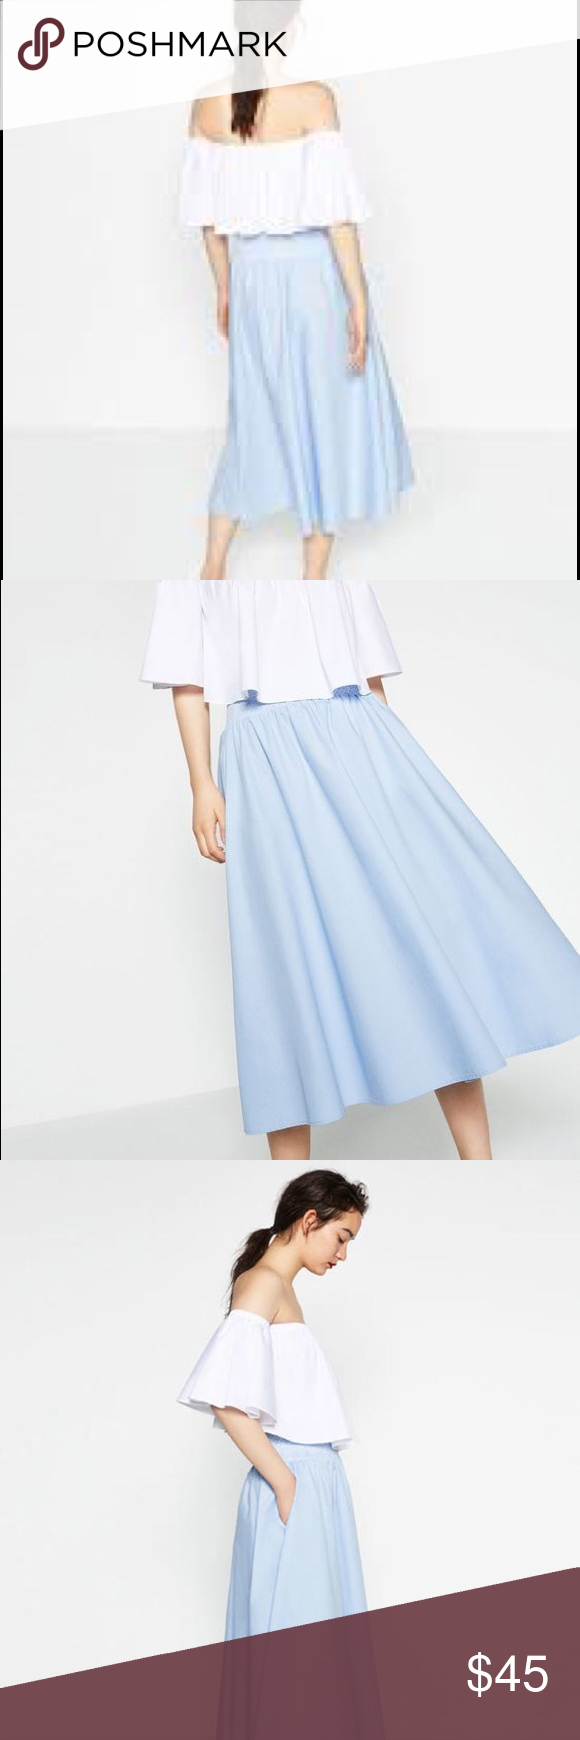 Zara Midi Poplin Skirt A lightweight pastel blue midi skirt in ...